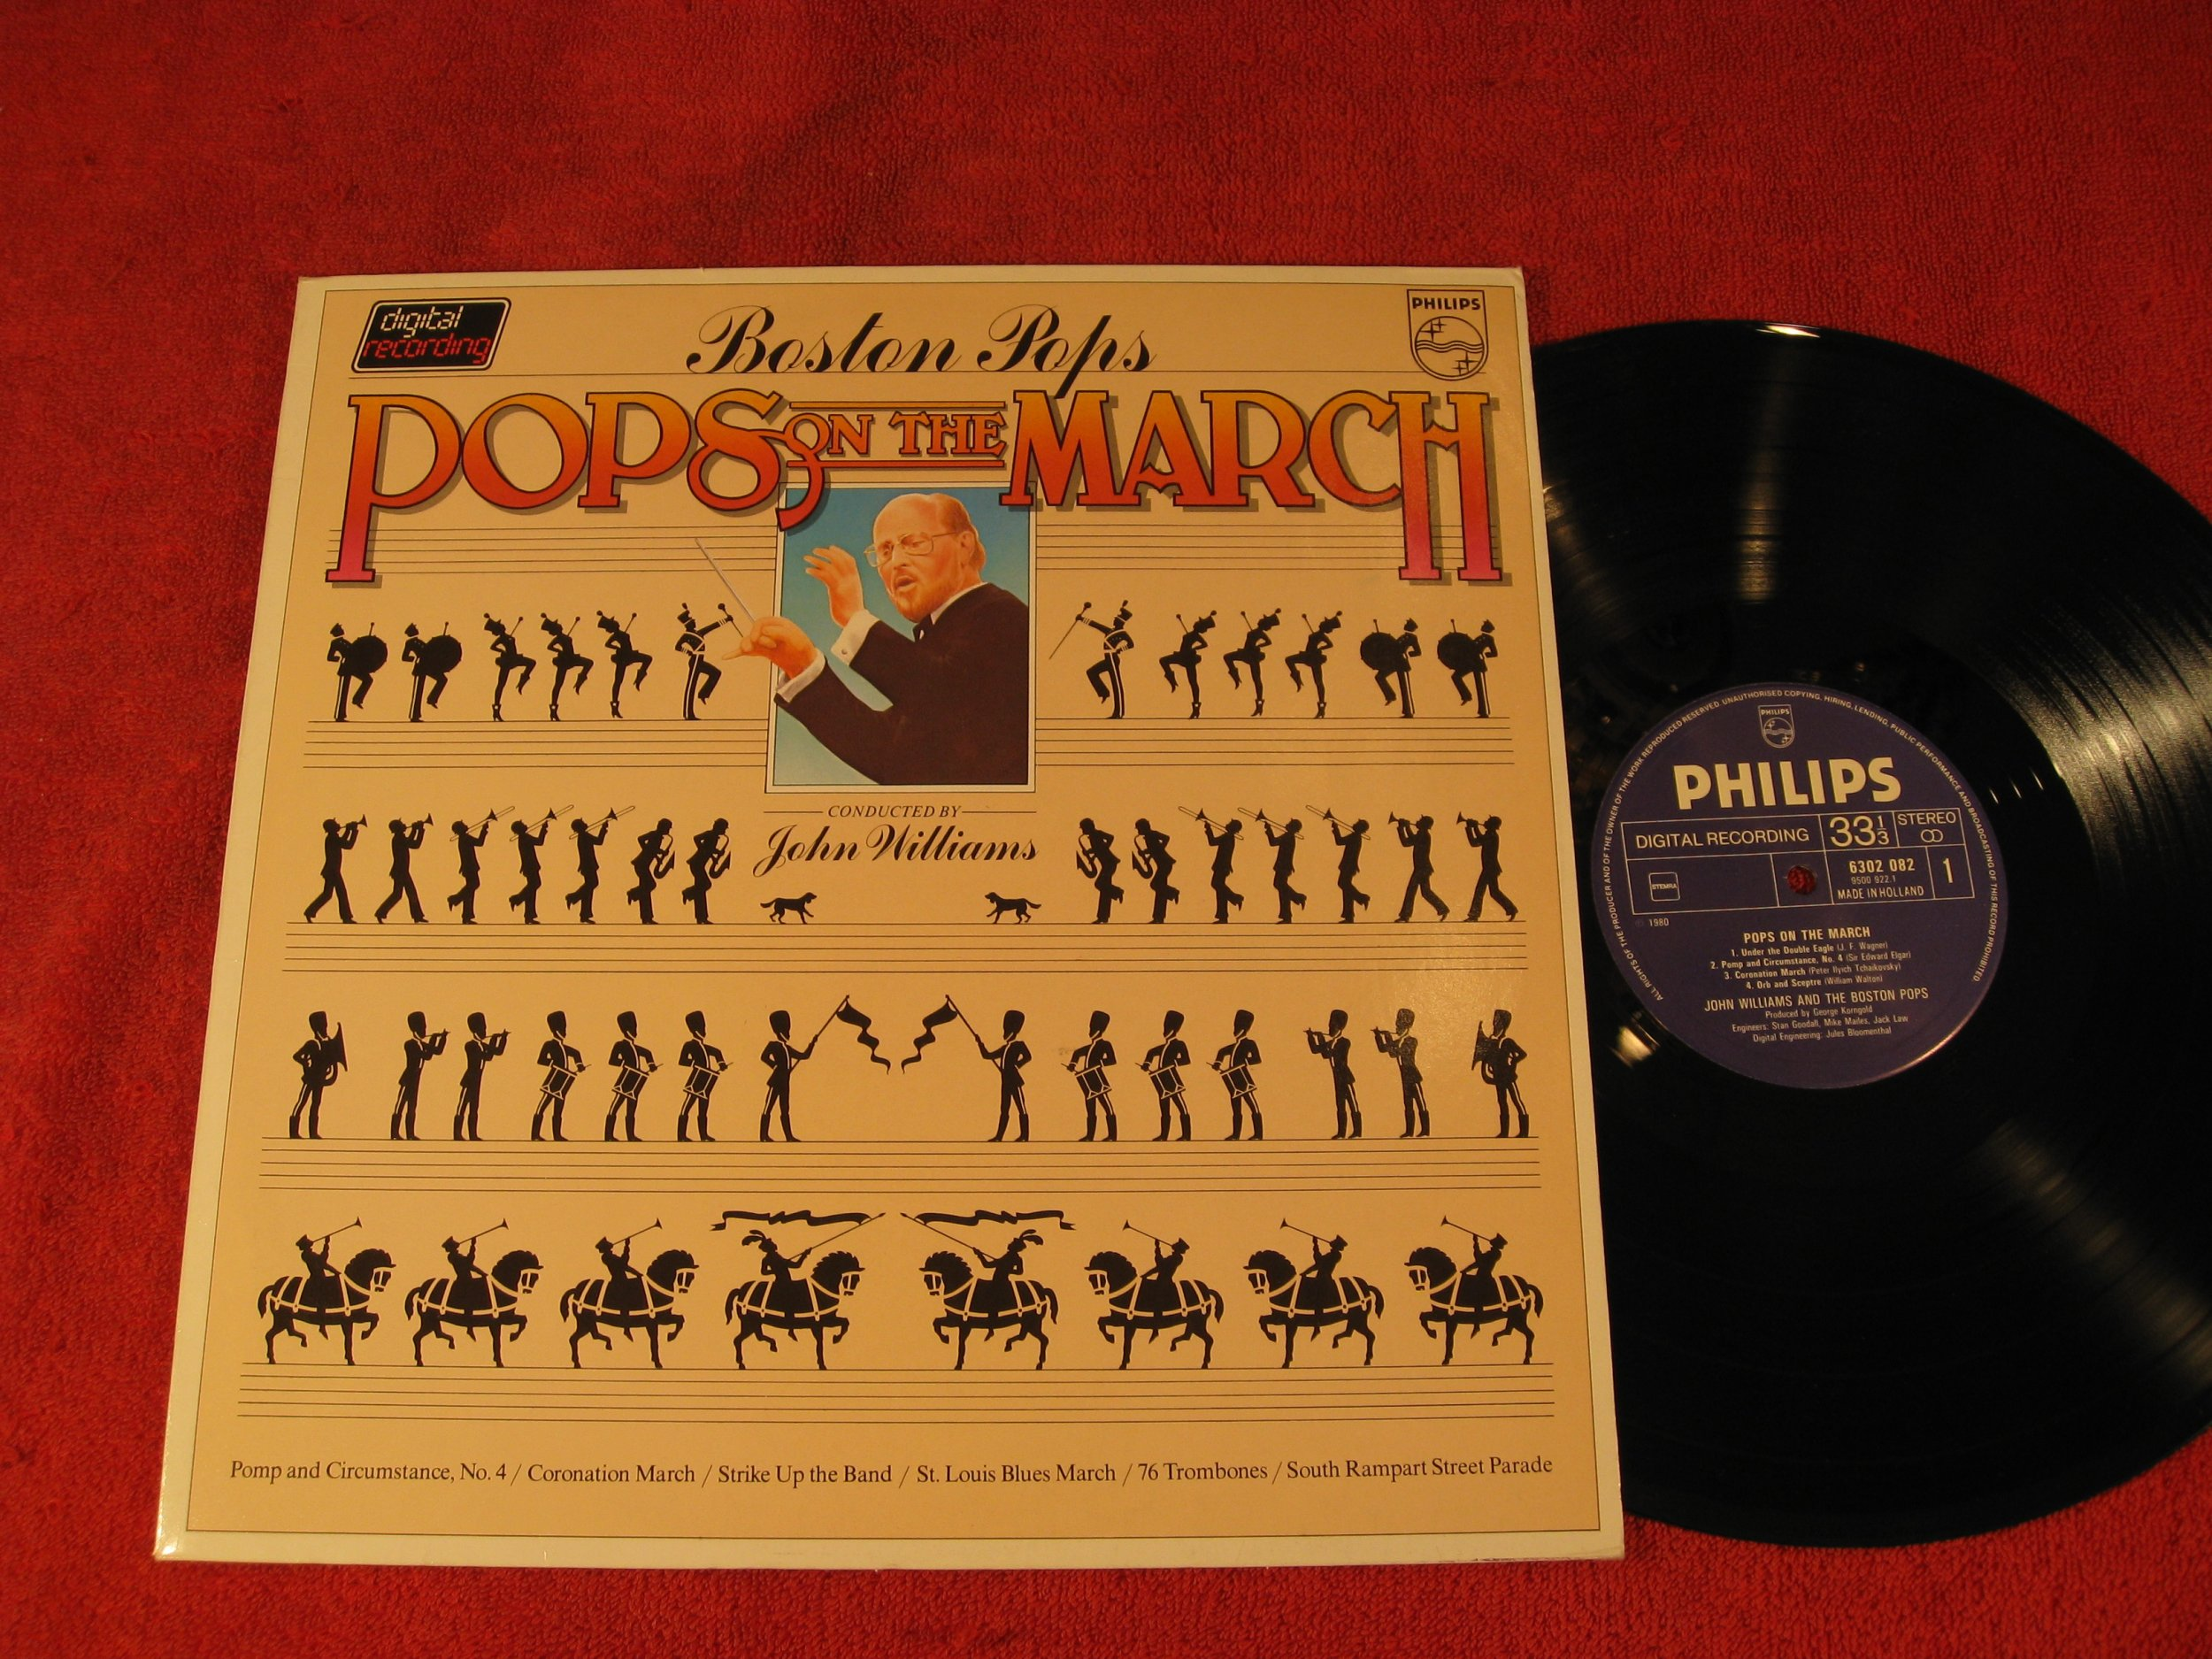 Pops on the March; Boston Pops; John Williams; Pomp and Circumstance no. 4; Coronation March; Strike up the Band; St. Louis Blues March; 76 Trombones; South Rampart Street Parade; 1980 Vinyl LP